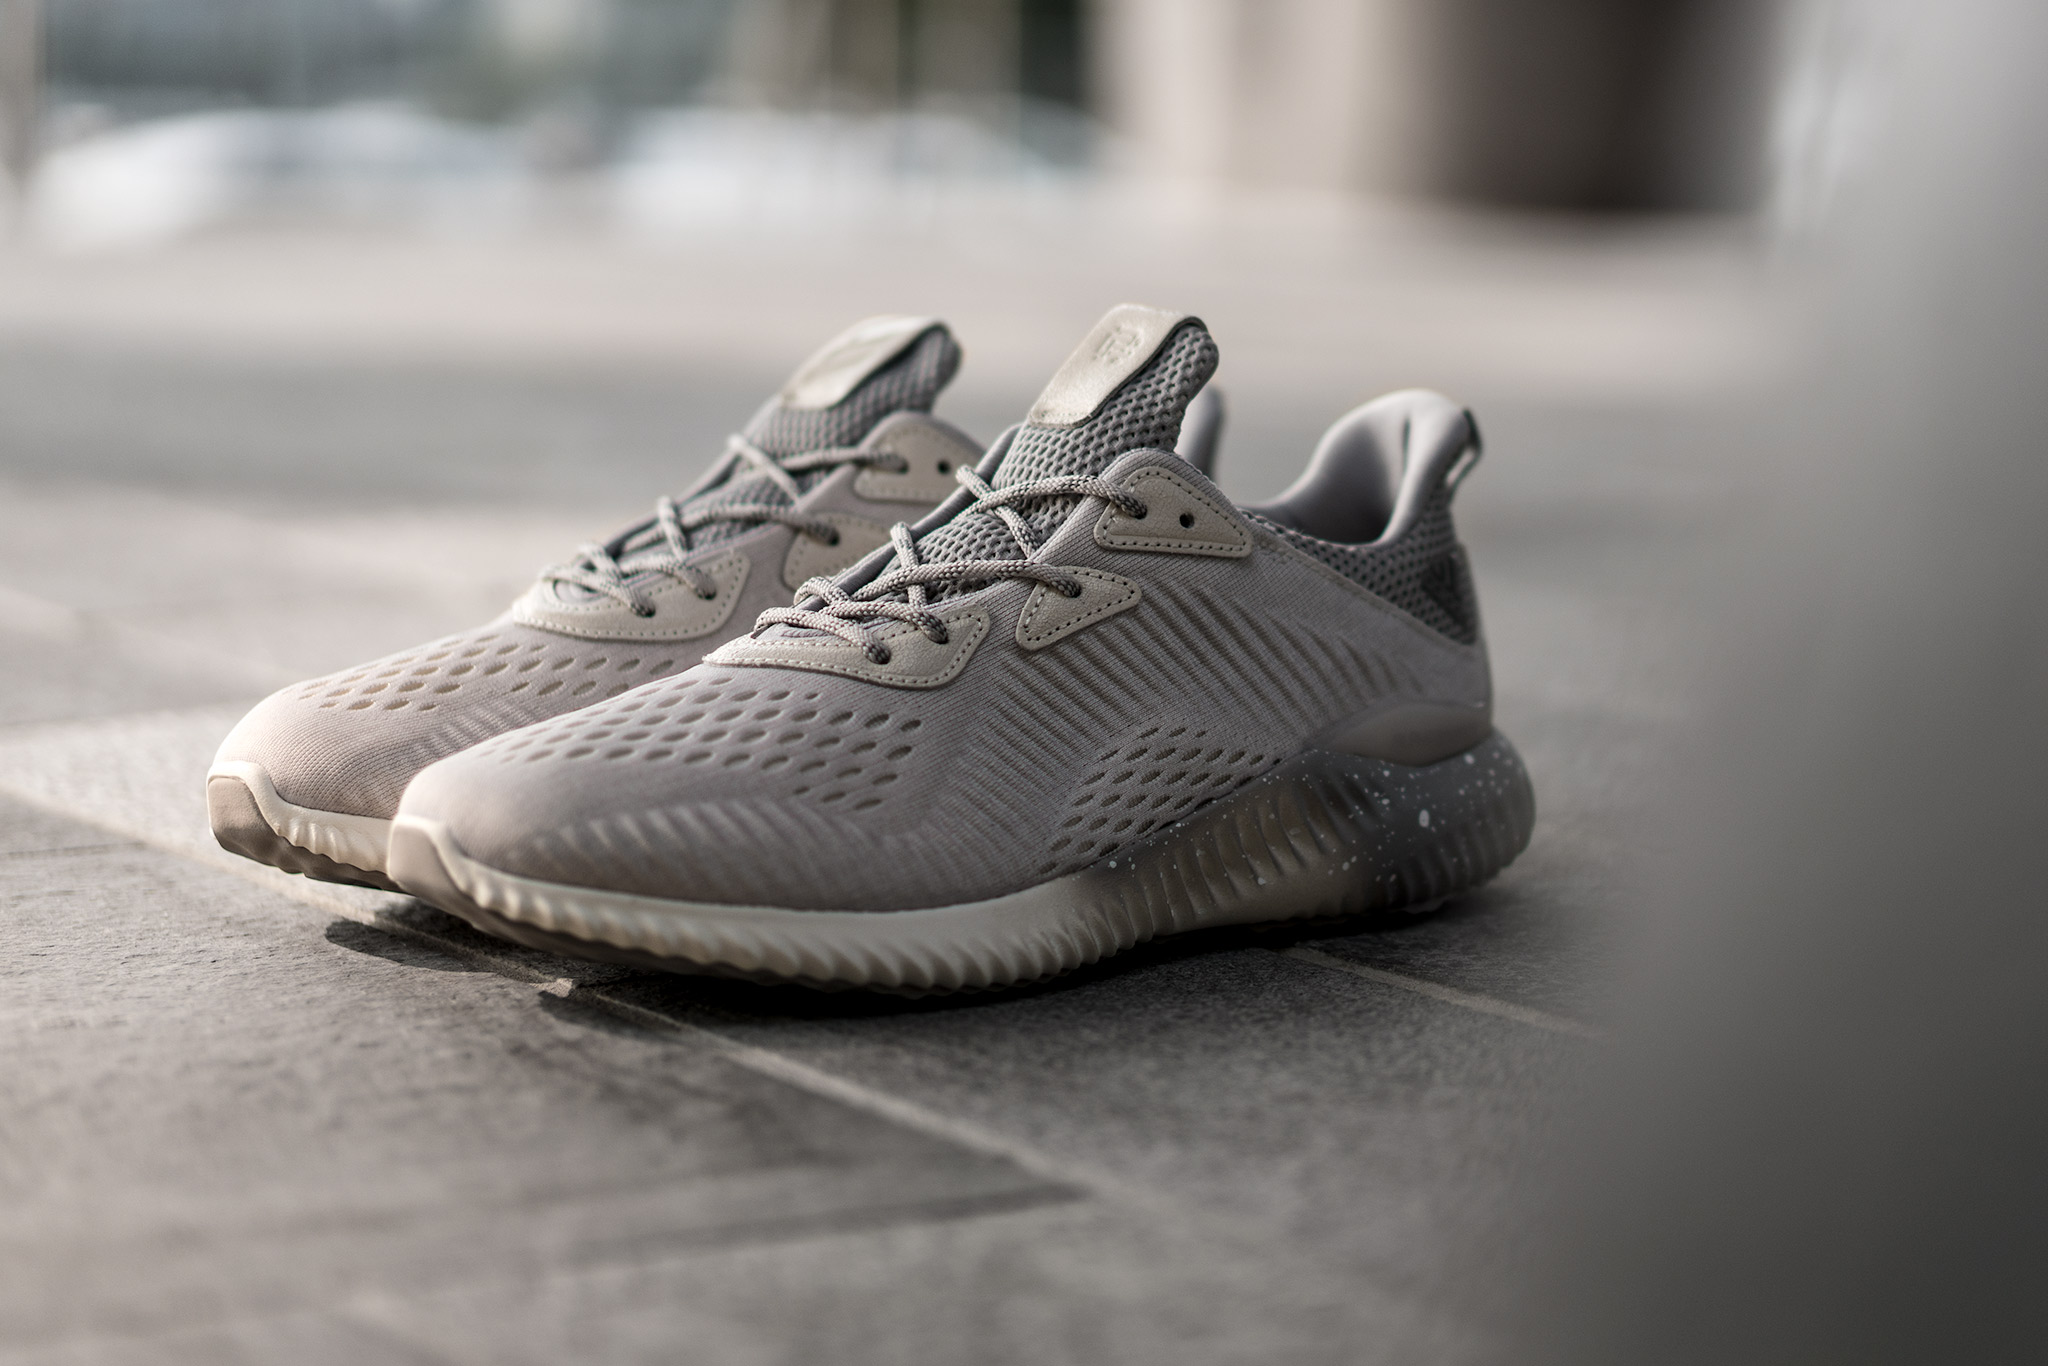 new product 5ad1d be43f Release Information The adidas x Reigning Champ Alphabounce will release  in-store at HAVEN Toronto and HAVEN Vancouver on Friday, August 4th at 11AM  local ...